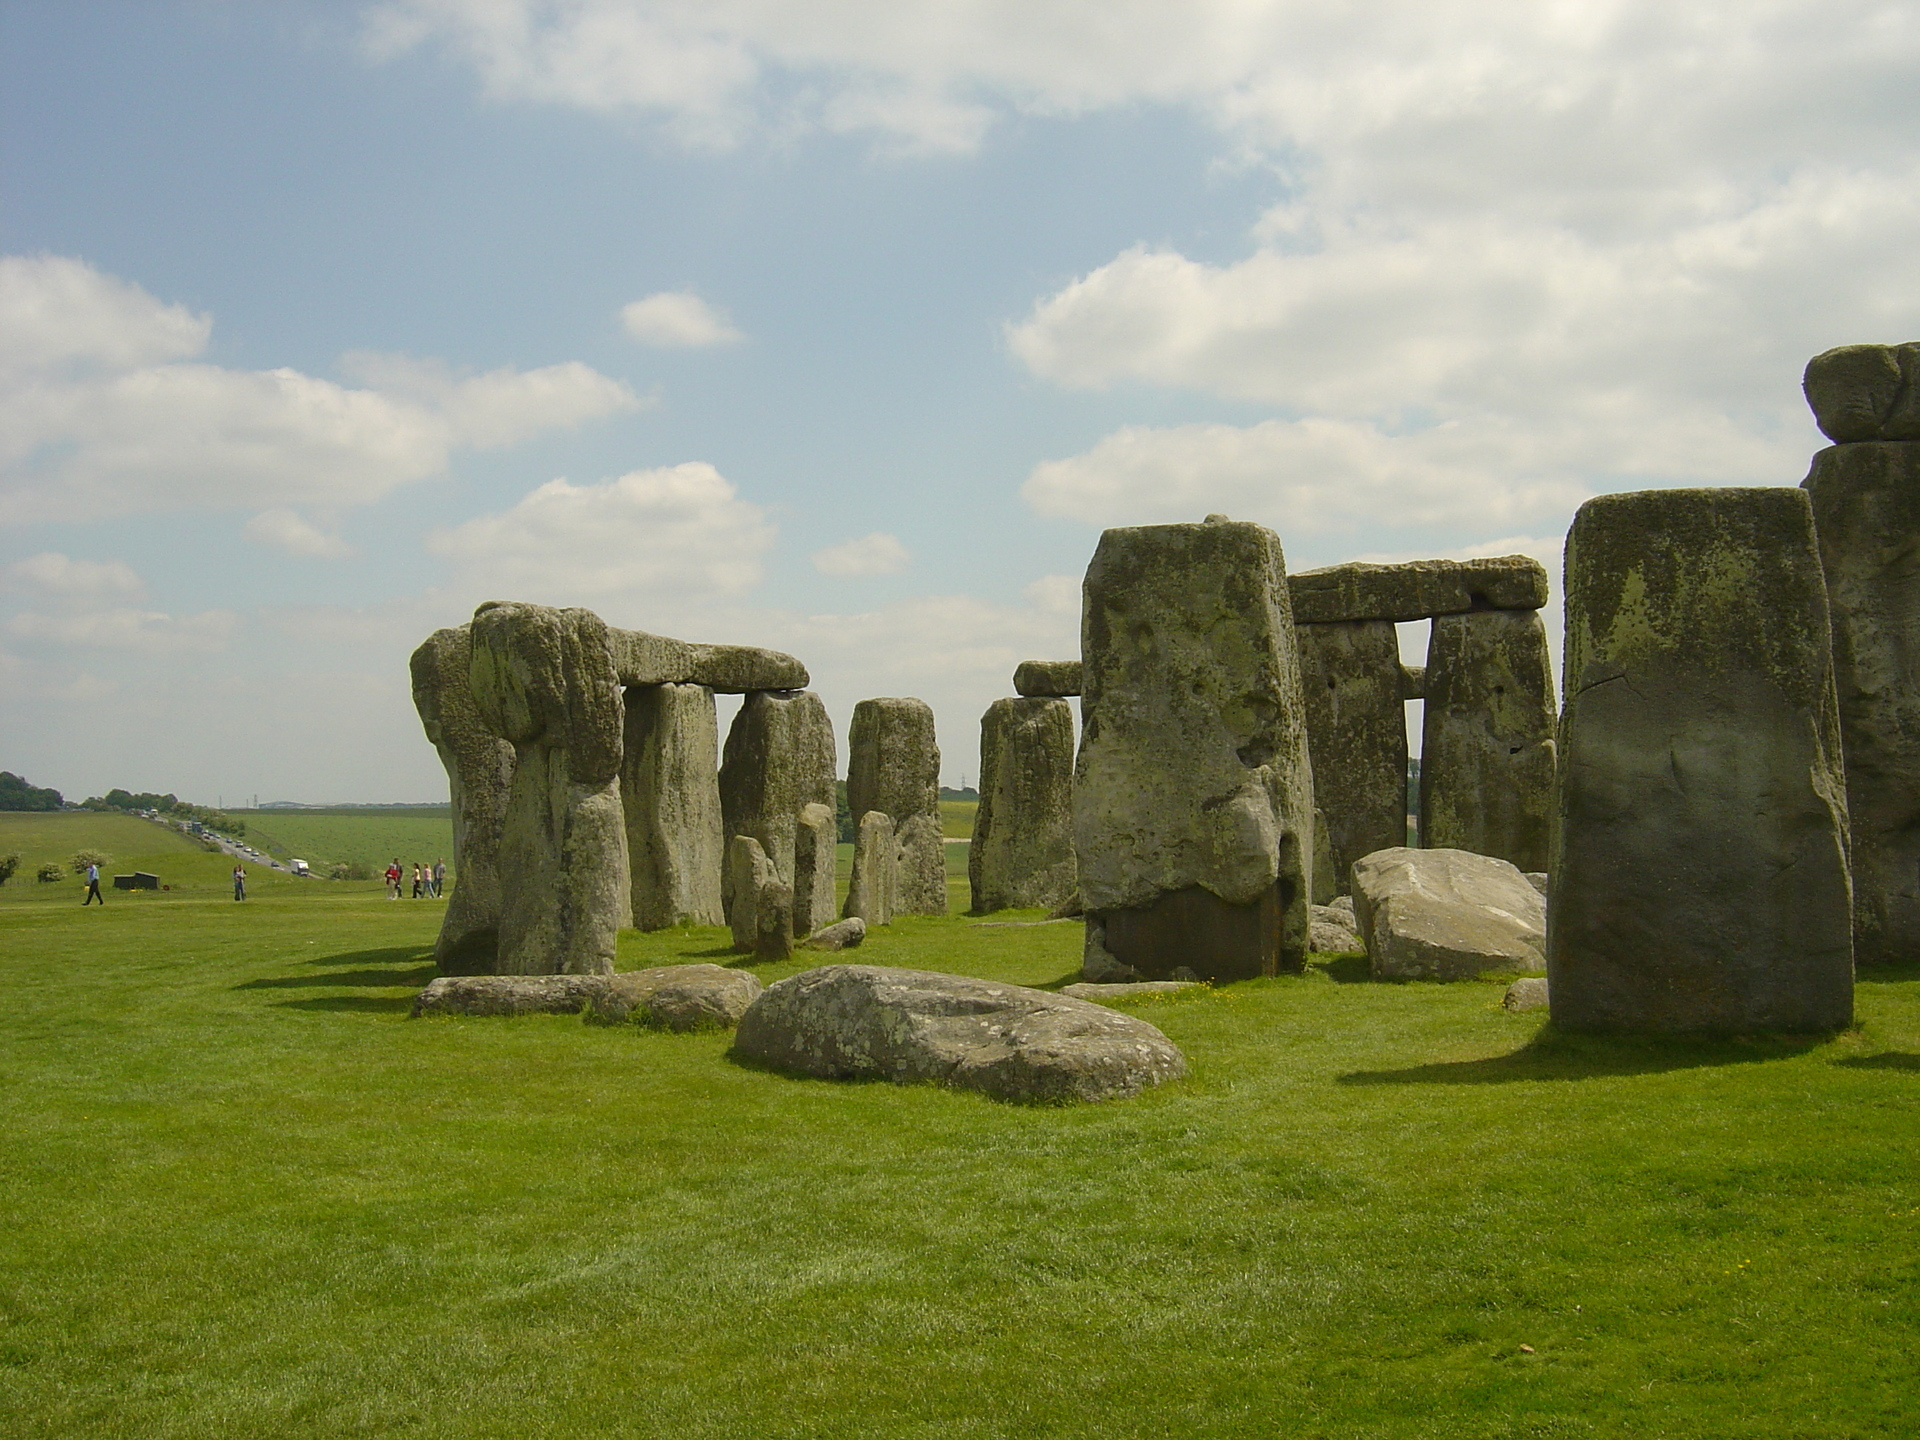 clouds-pass-over-stonehenge-during-rainy-season